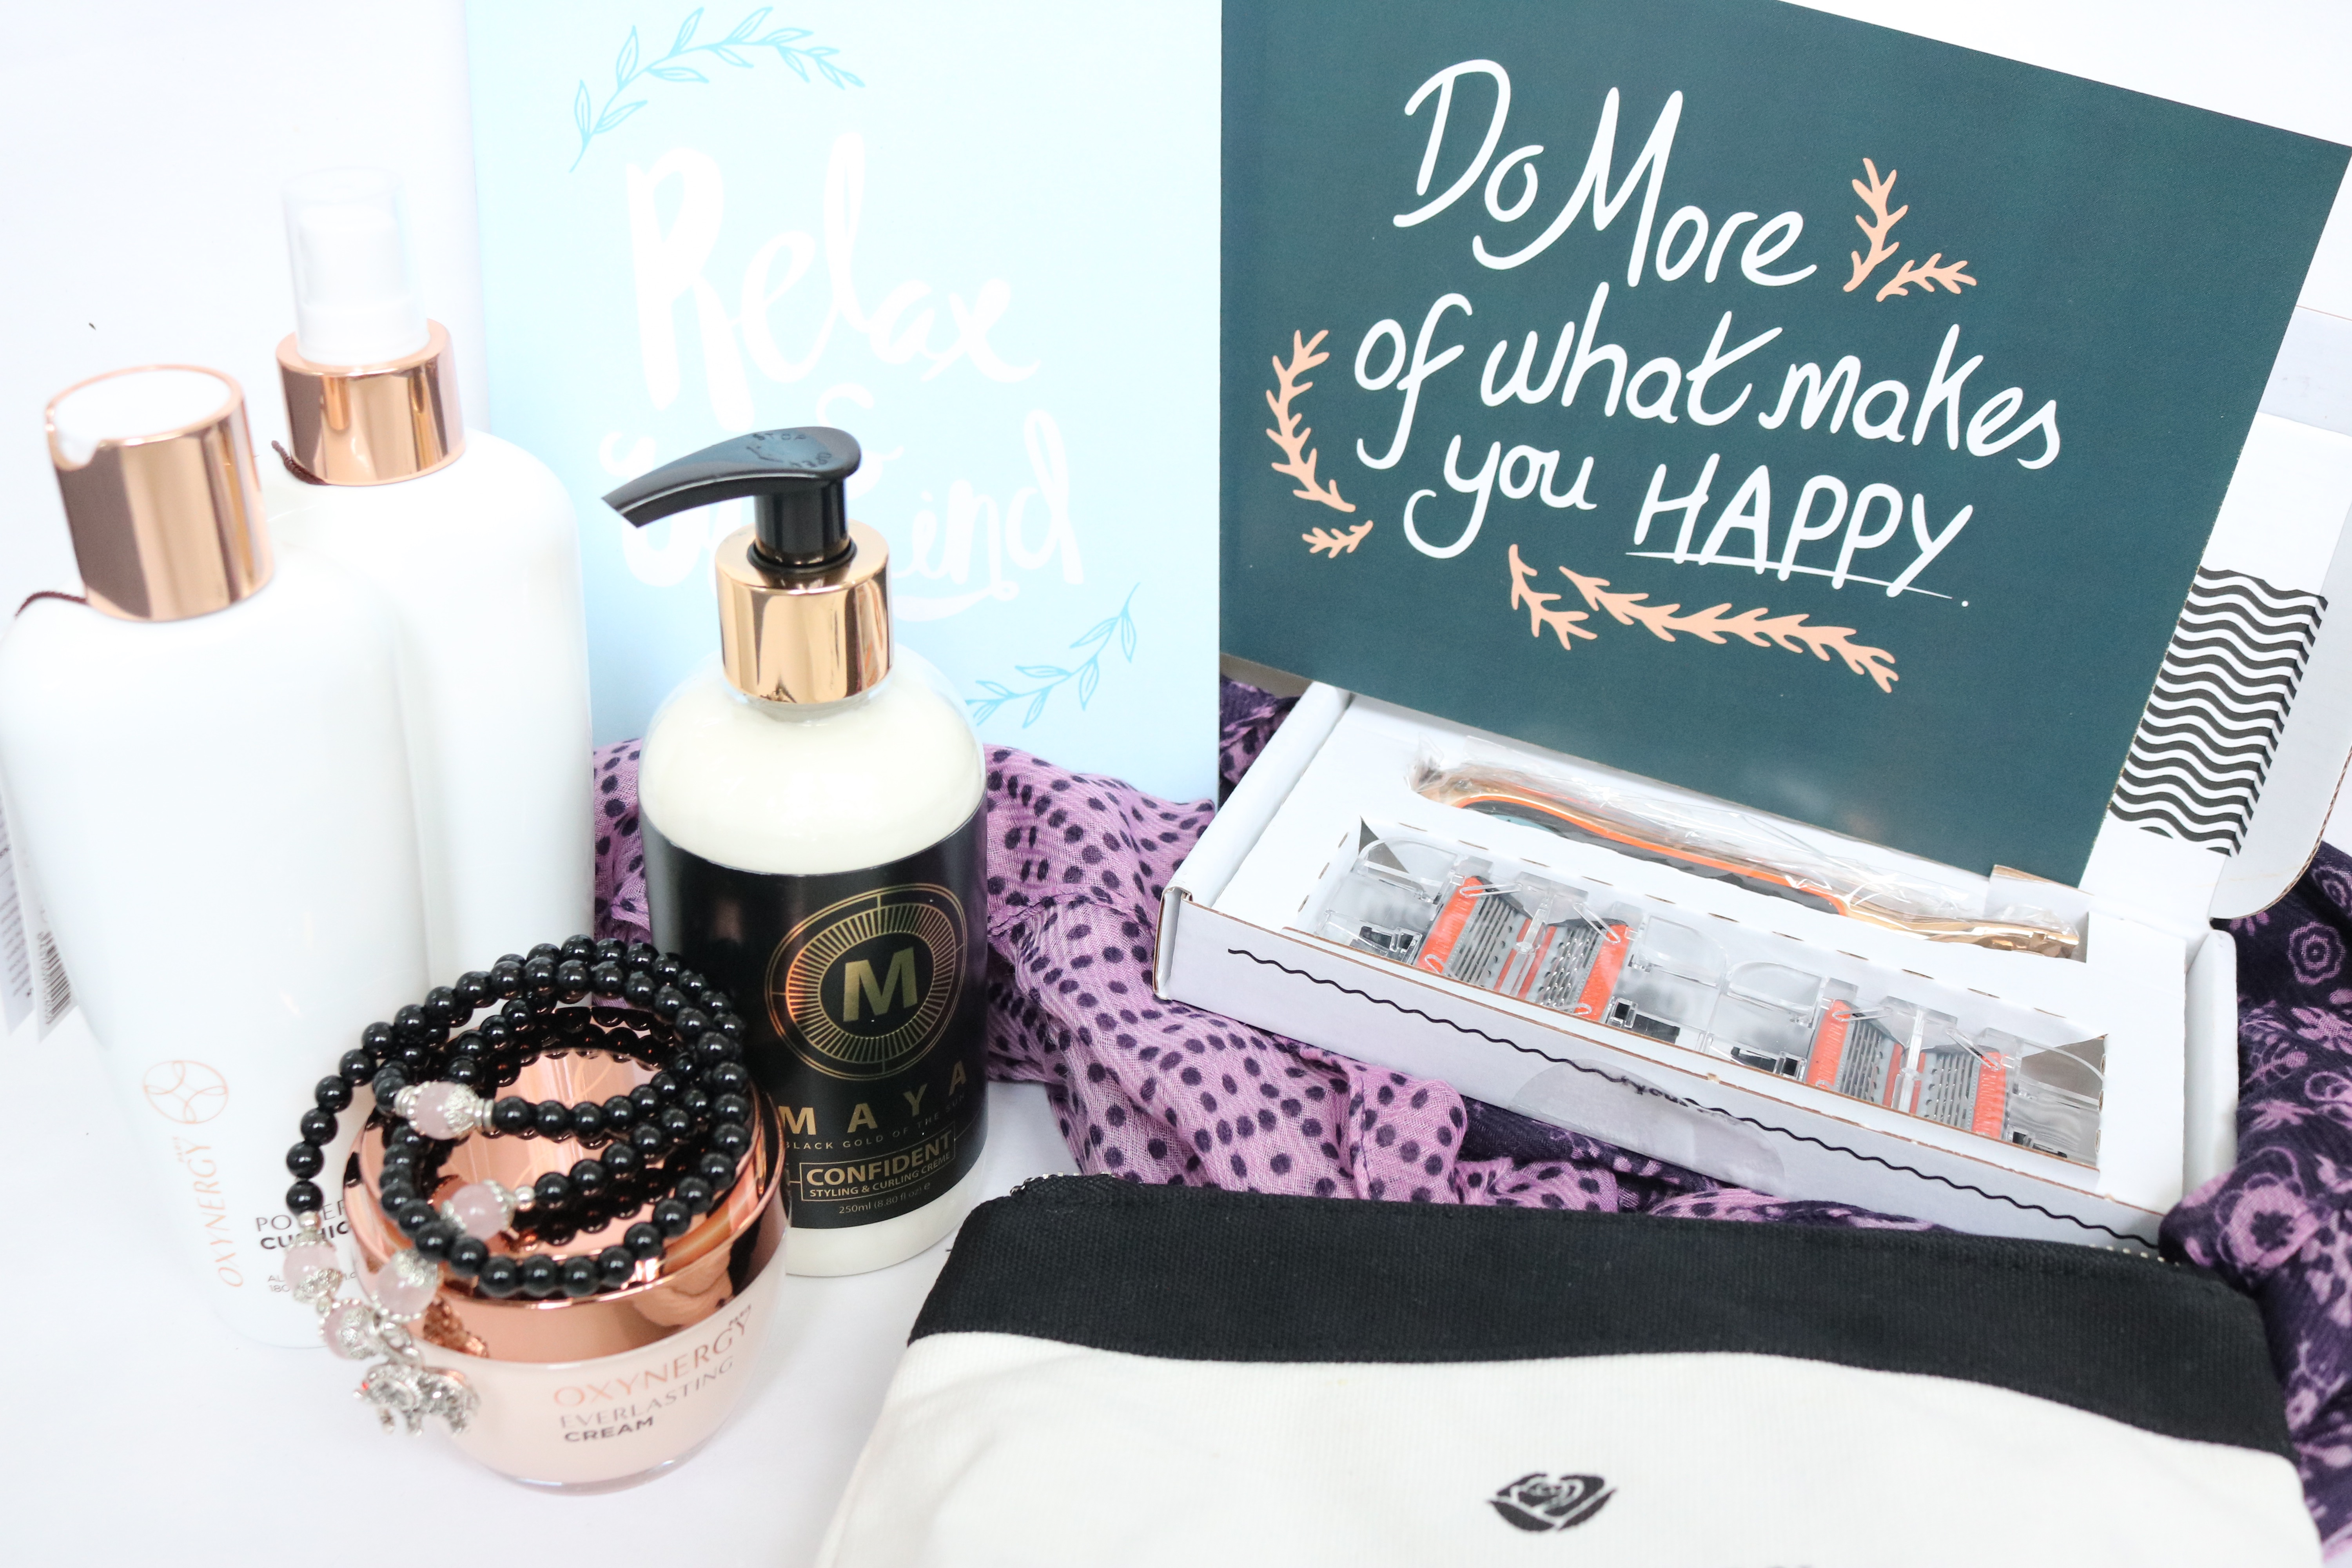 Jodetopia, Giveaway, Oxynergy Paris, Corbico Jewellery, Friction Free Shaving, Maya, Dot Creates, Lylia Rose, Lili Burton, Win